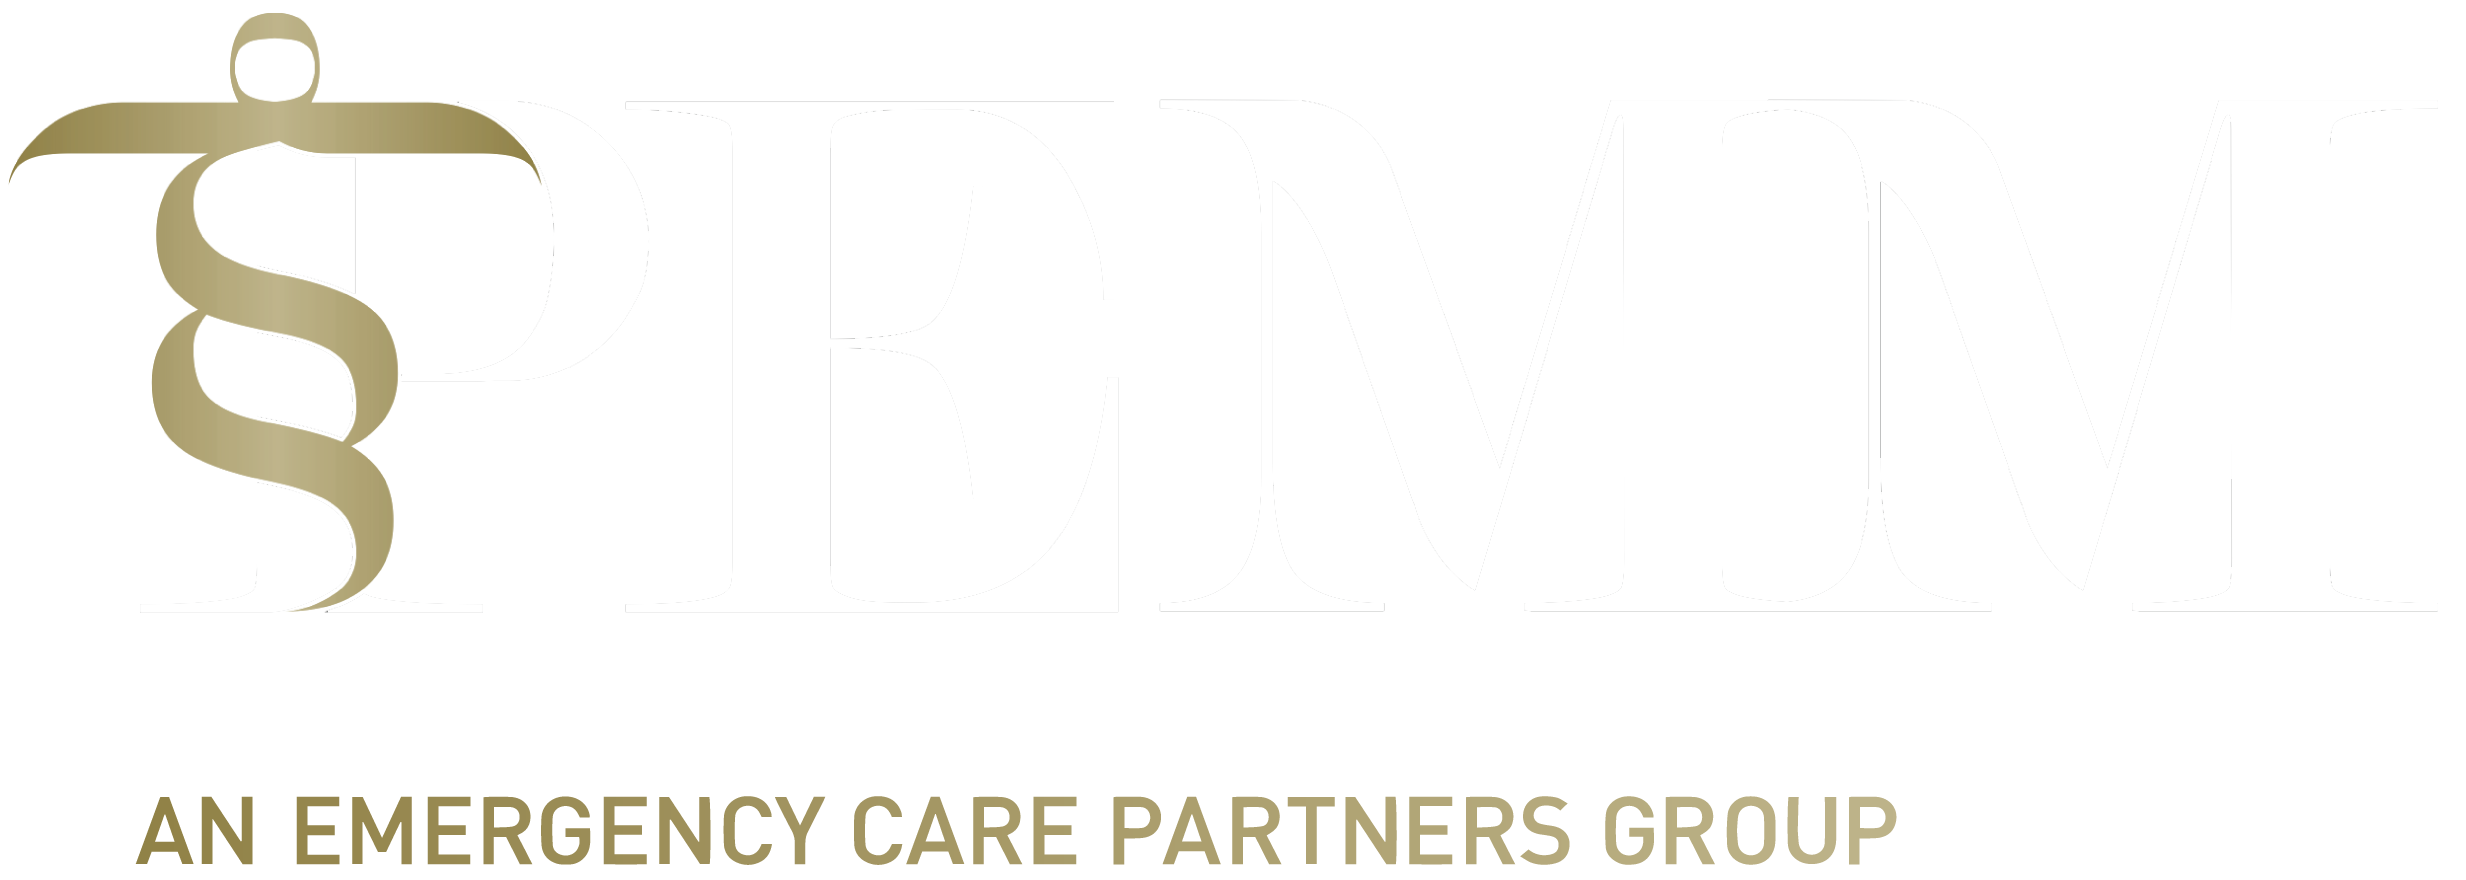 Professional Emergency Medicine Management